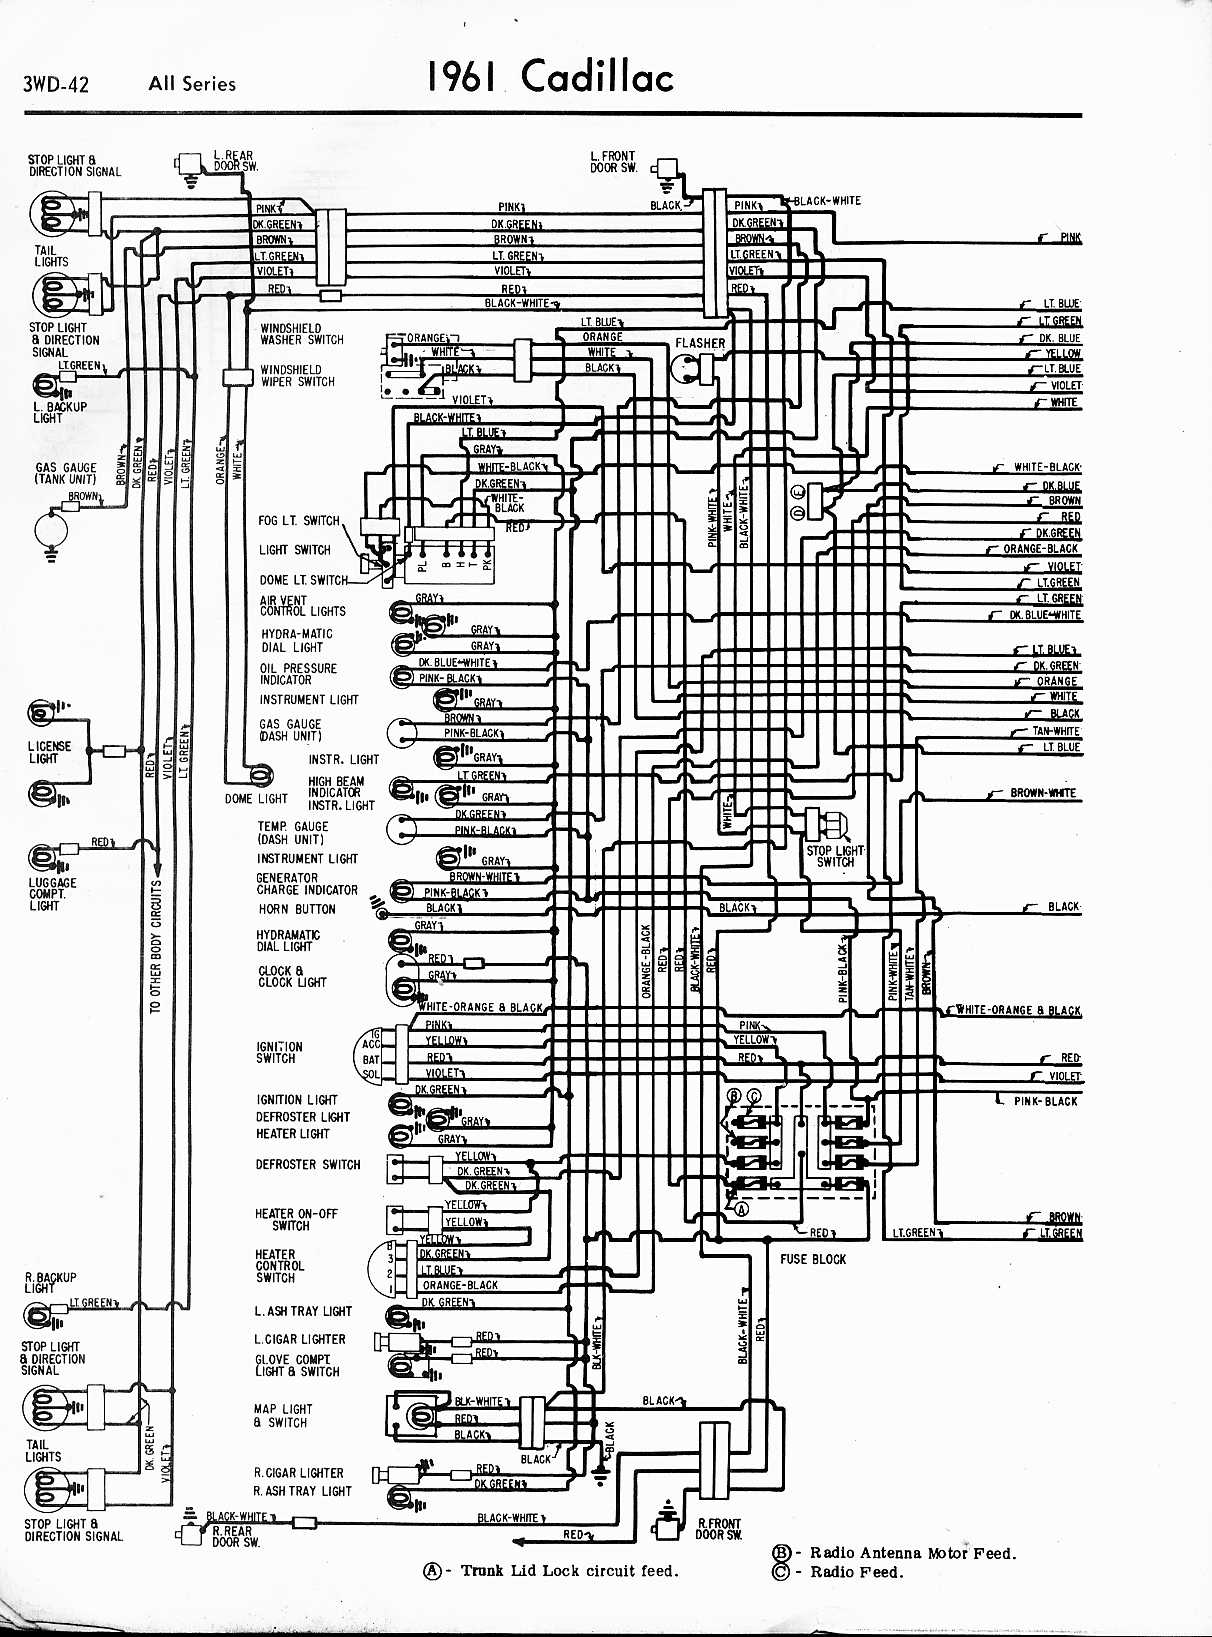 cadillac wiring diagrams 2007 ford ranger radio diagram 1961 ignition free engine image for